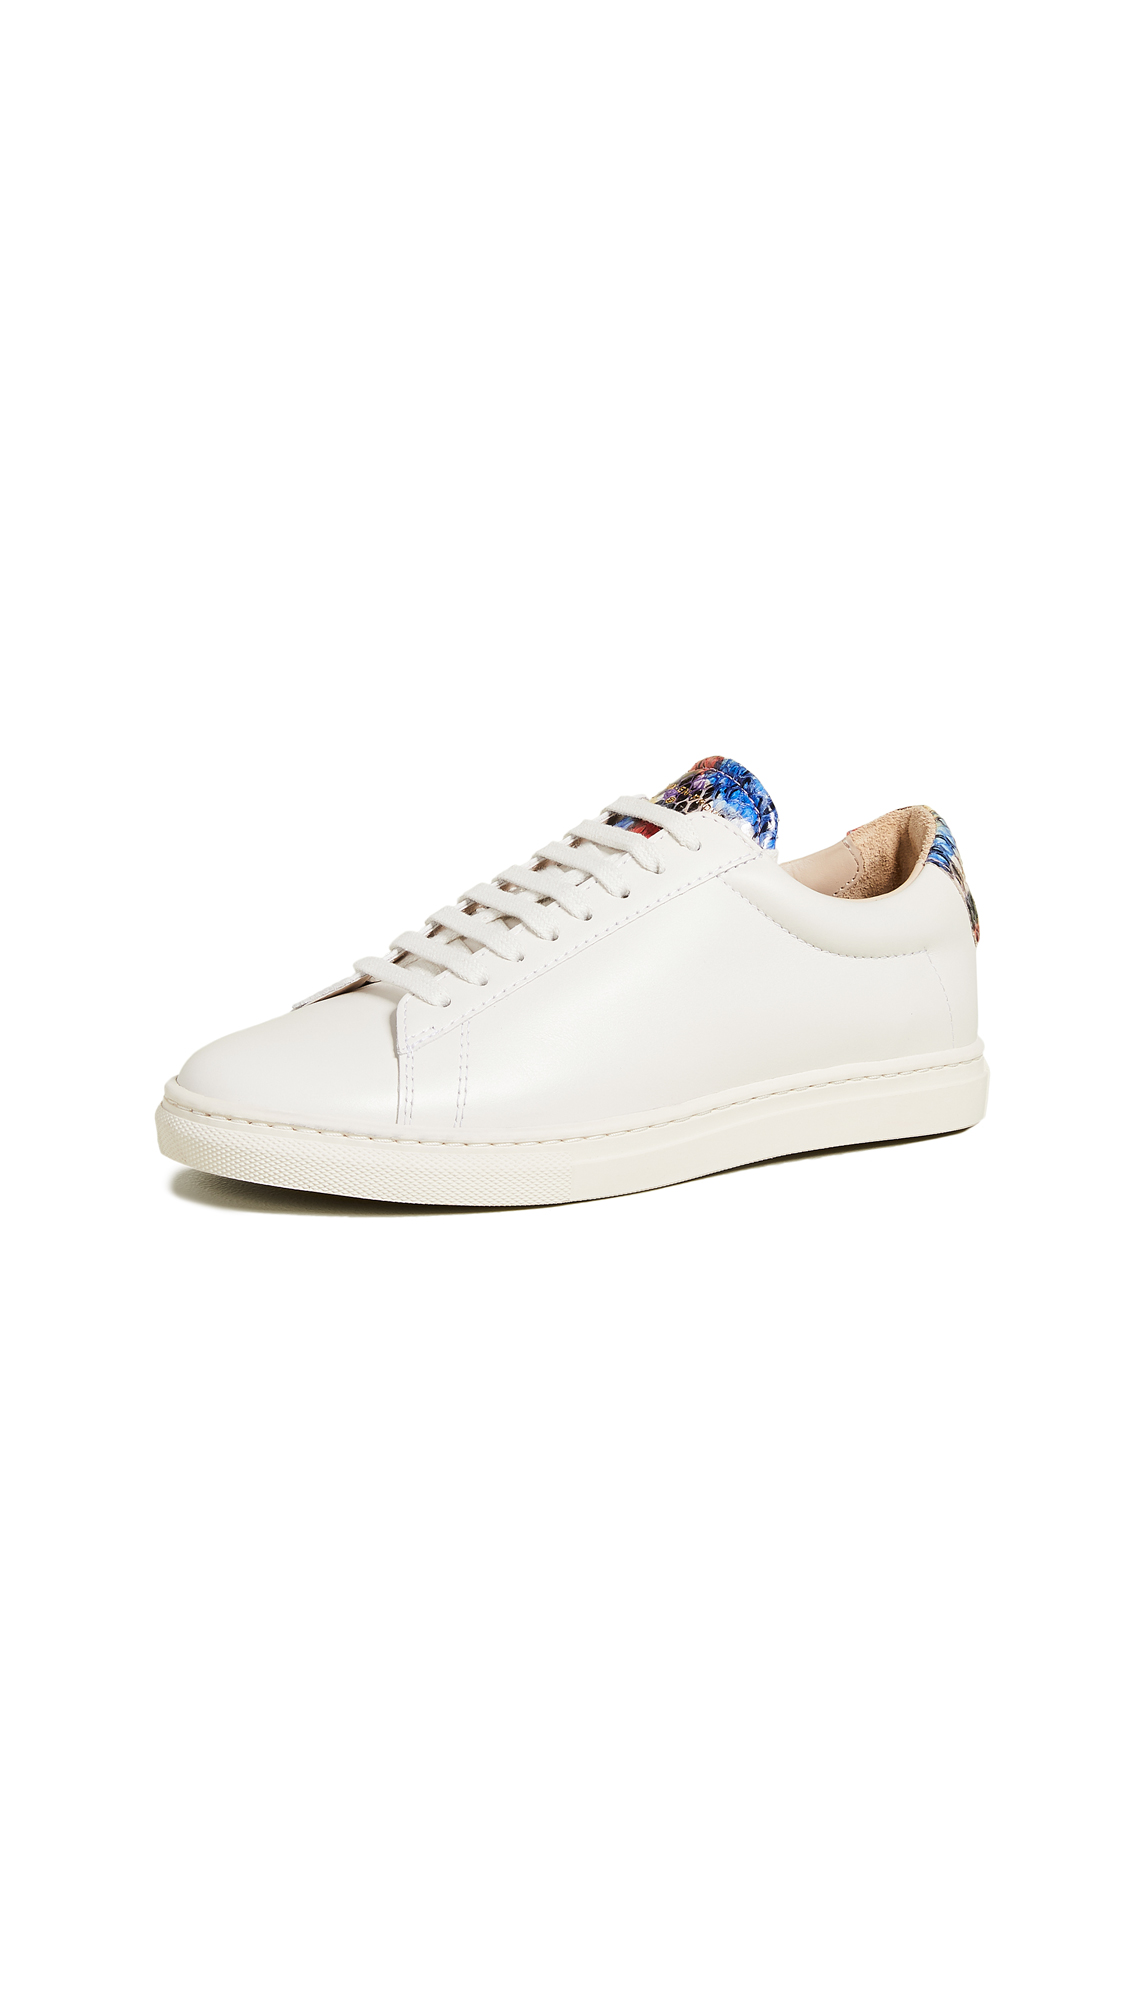 Zespa Nappa OW VIP Lace Up Sneakers